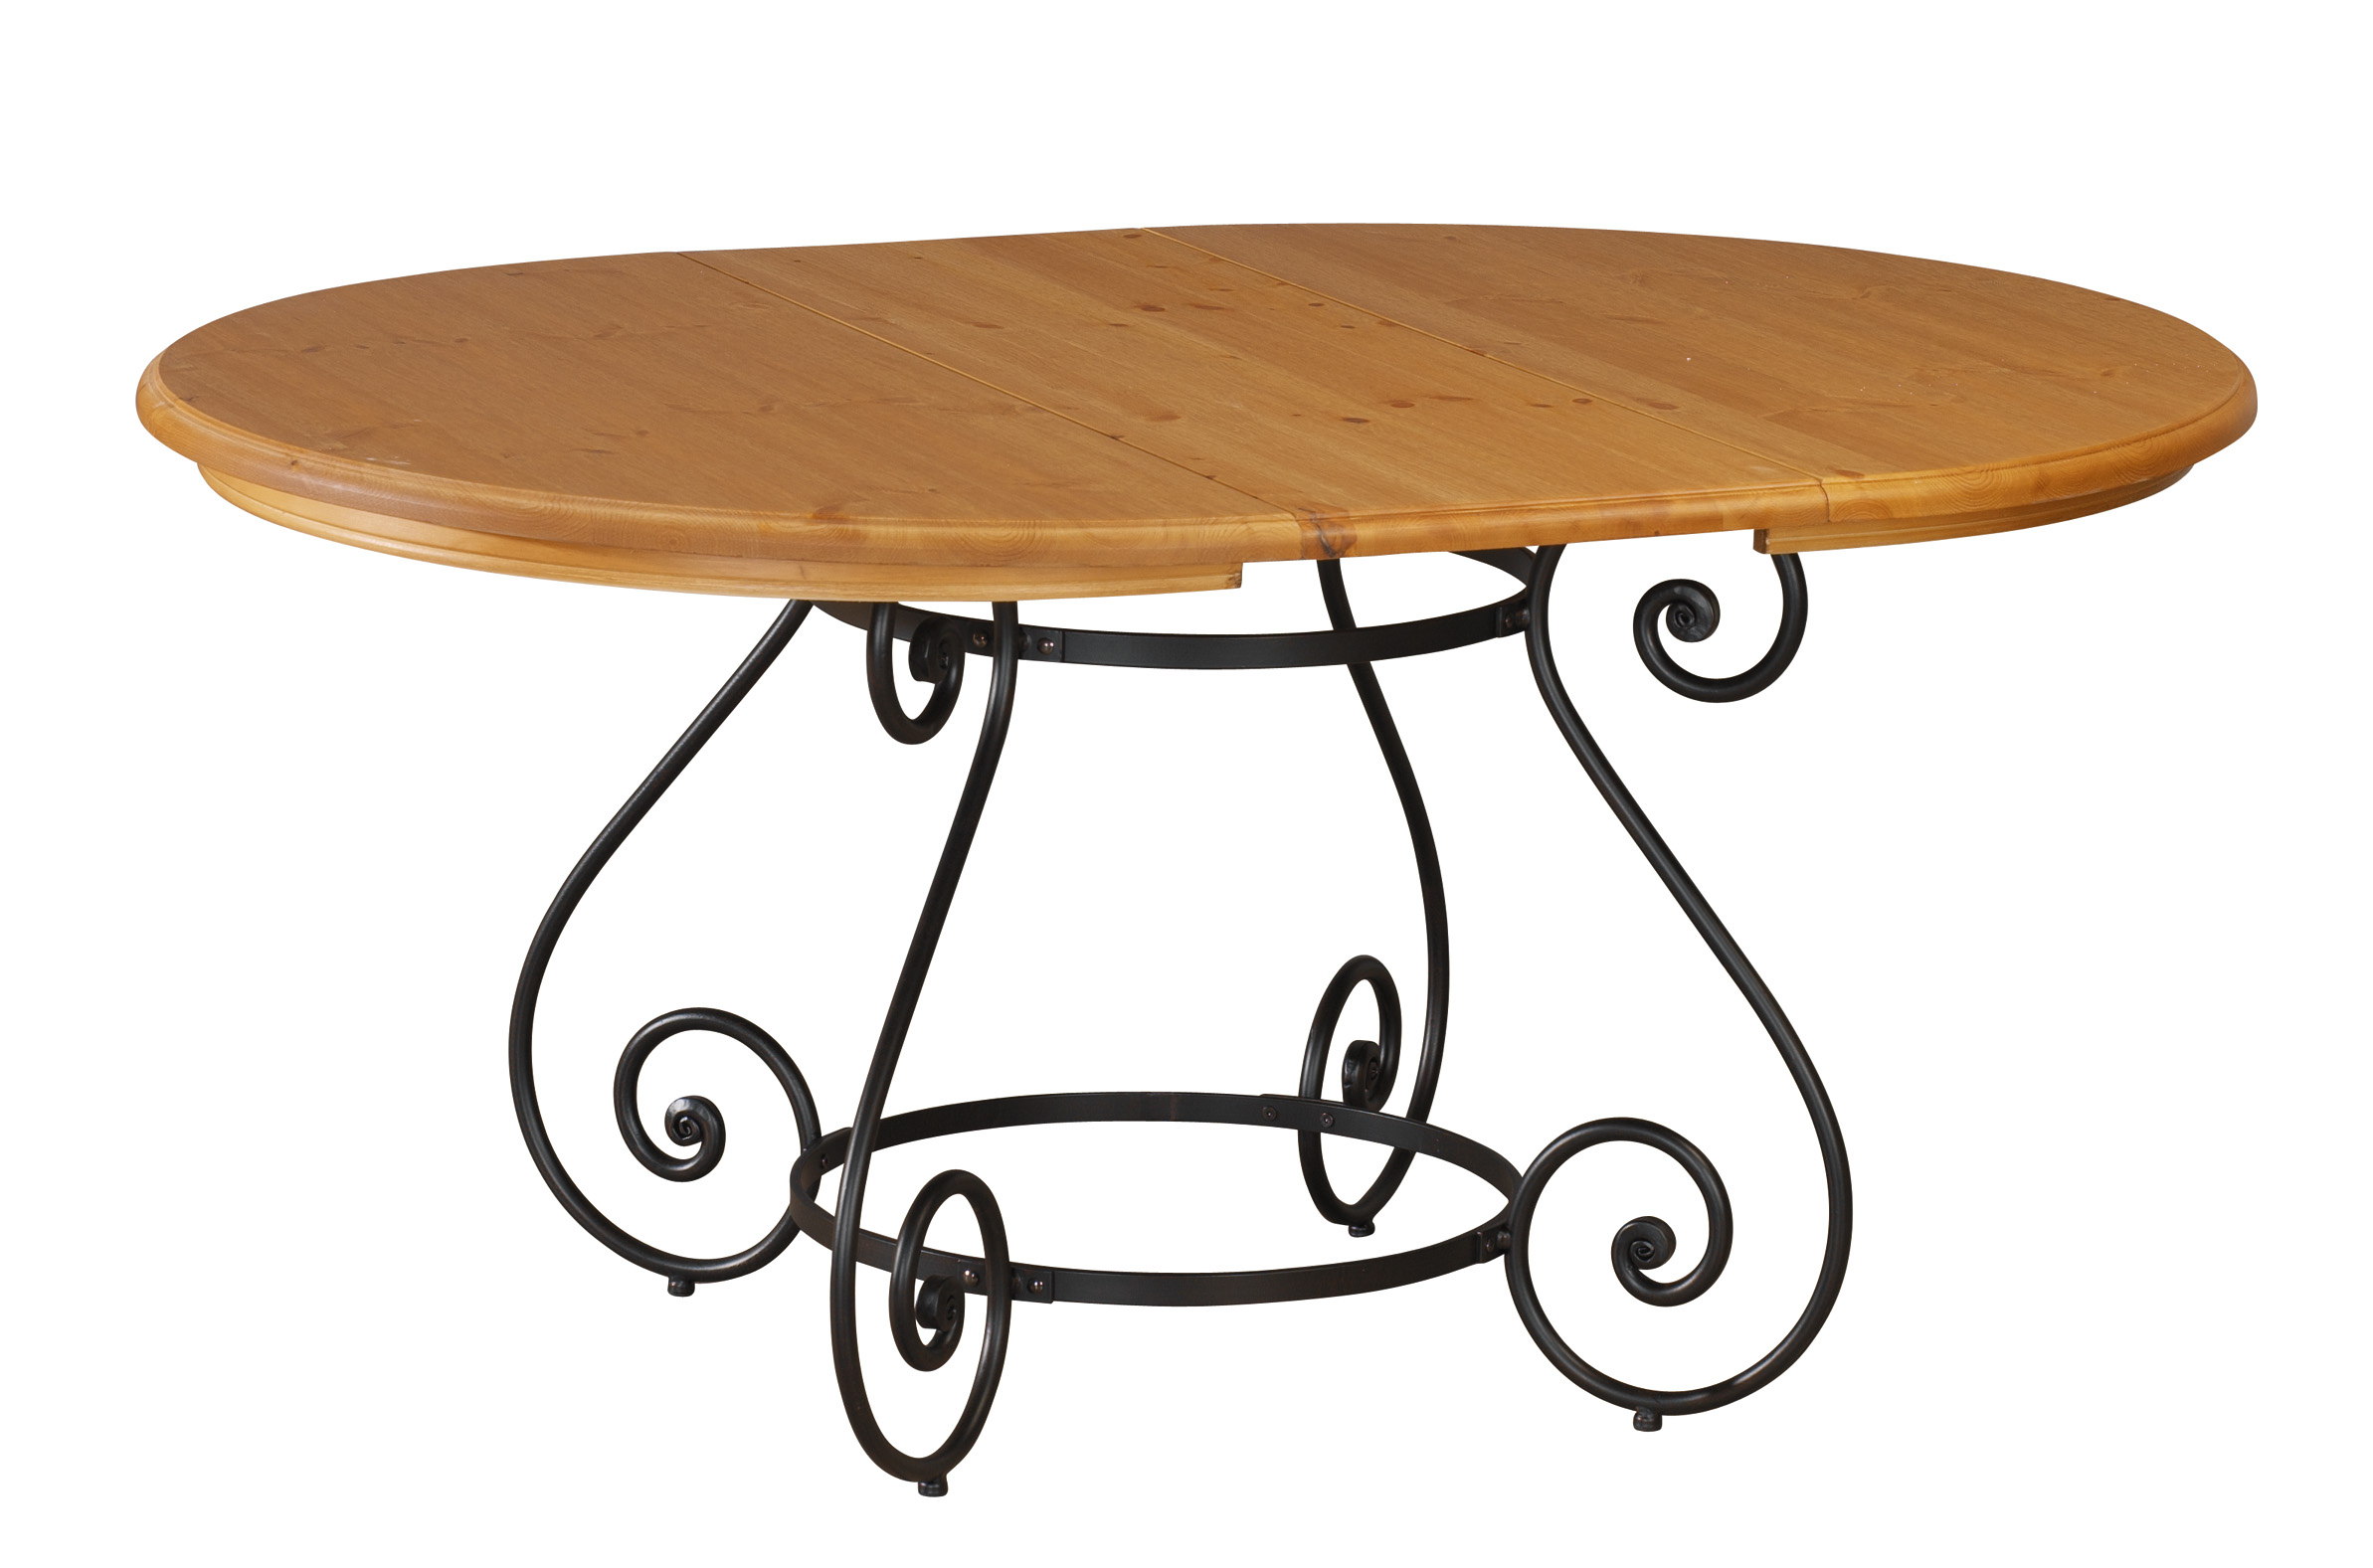 Table ronde fer forg et bois table de lit - Table bois fer forge ...